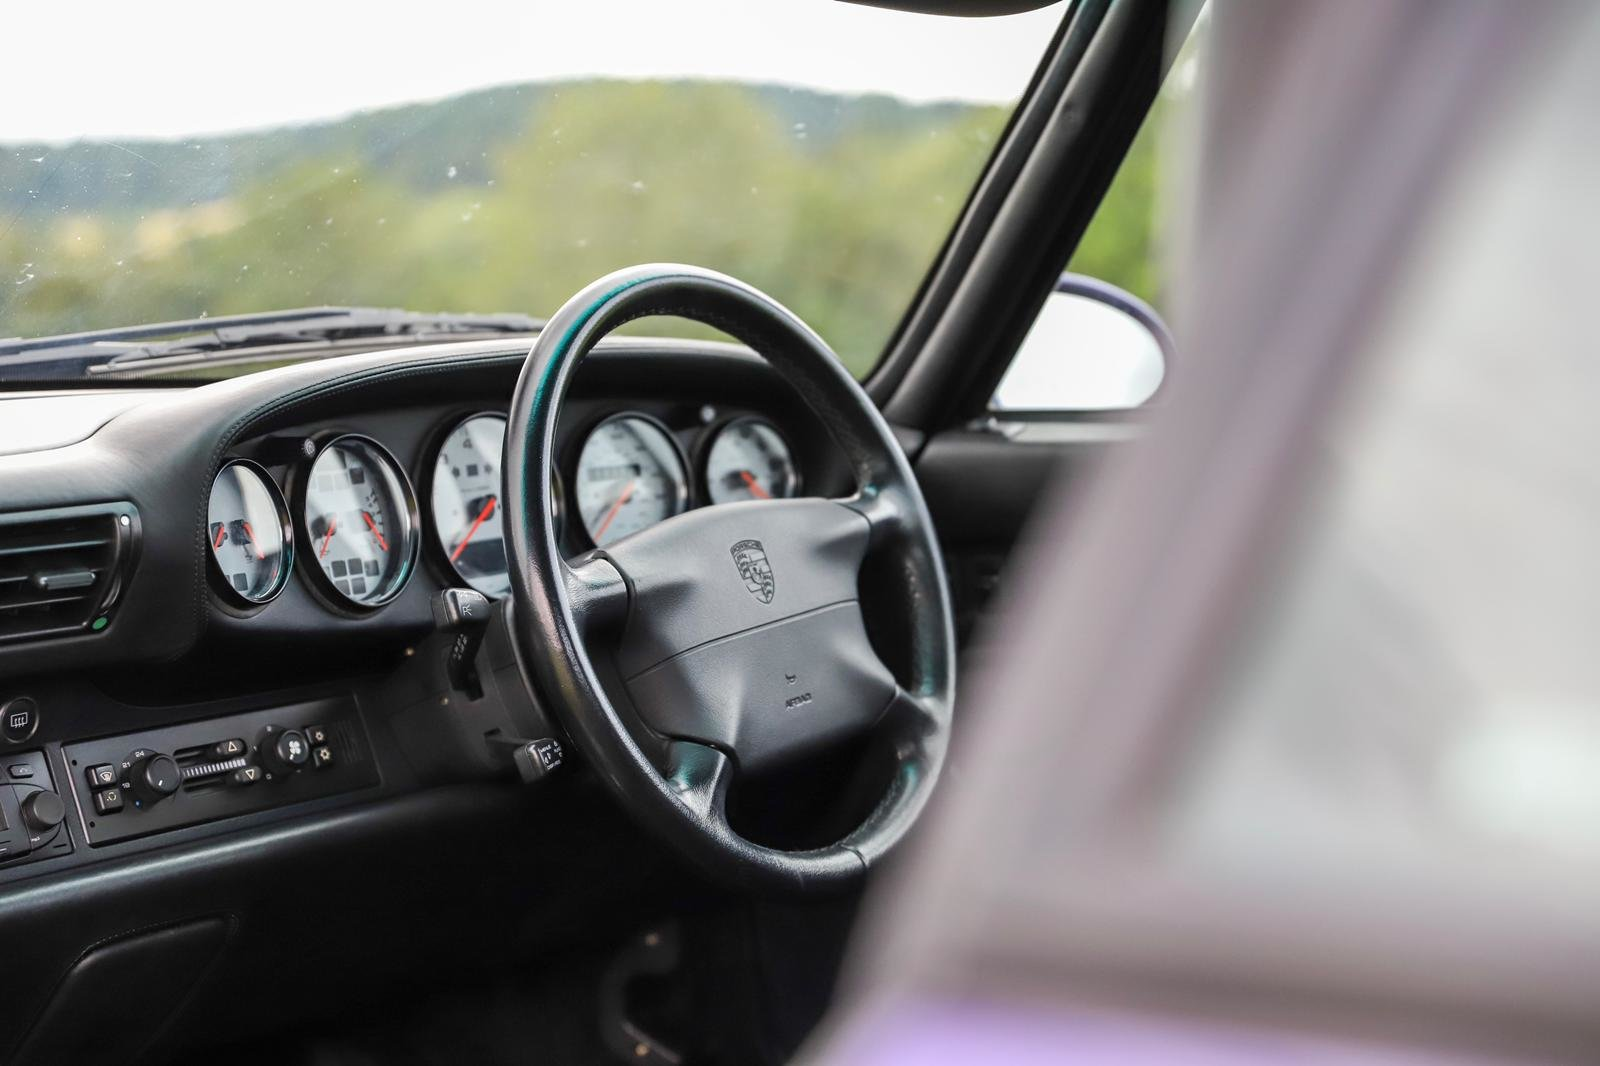 1998 RARE 993 LOW MILEAGE MANUAL C 4S - SPECTACULAR VIOLET BLUE   For Sale (picture 5 of 6)